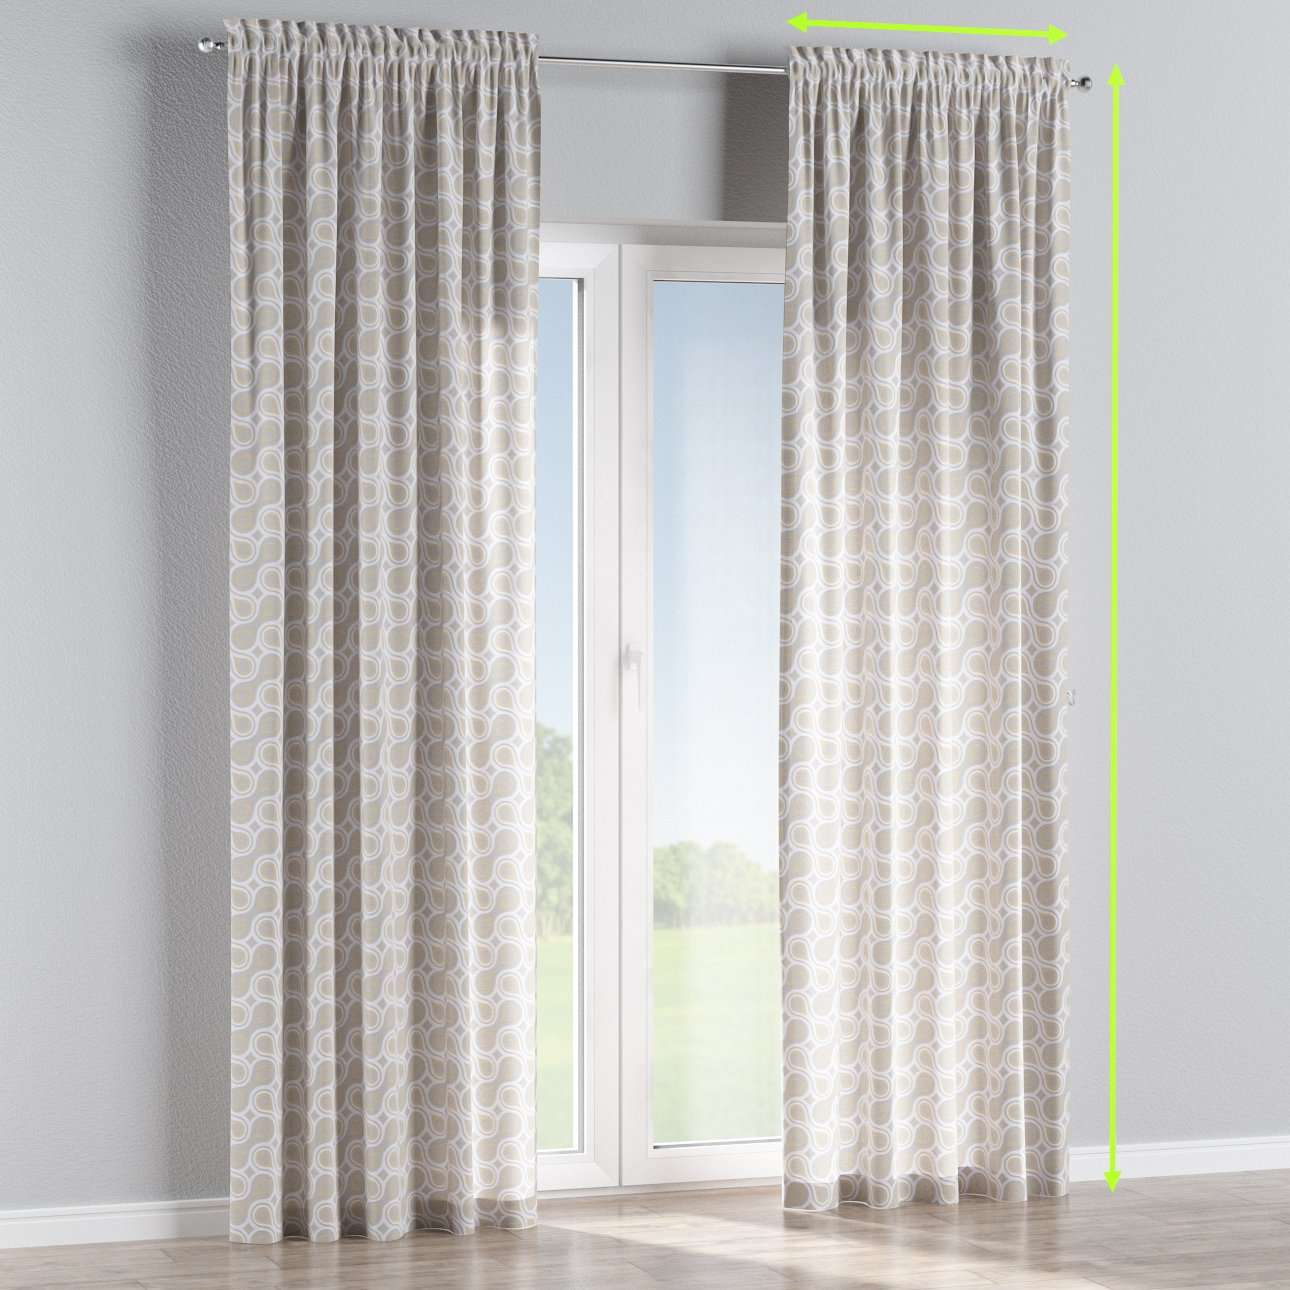 Slot and frill lined curtains in collection Flowers, fabric: 311-11